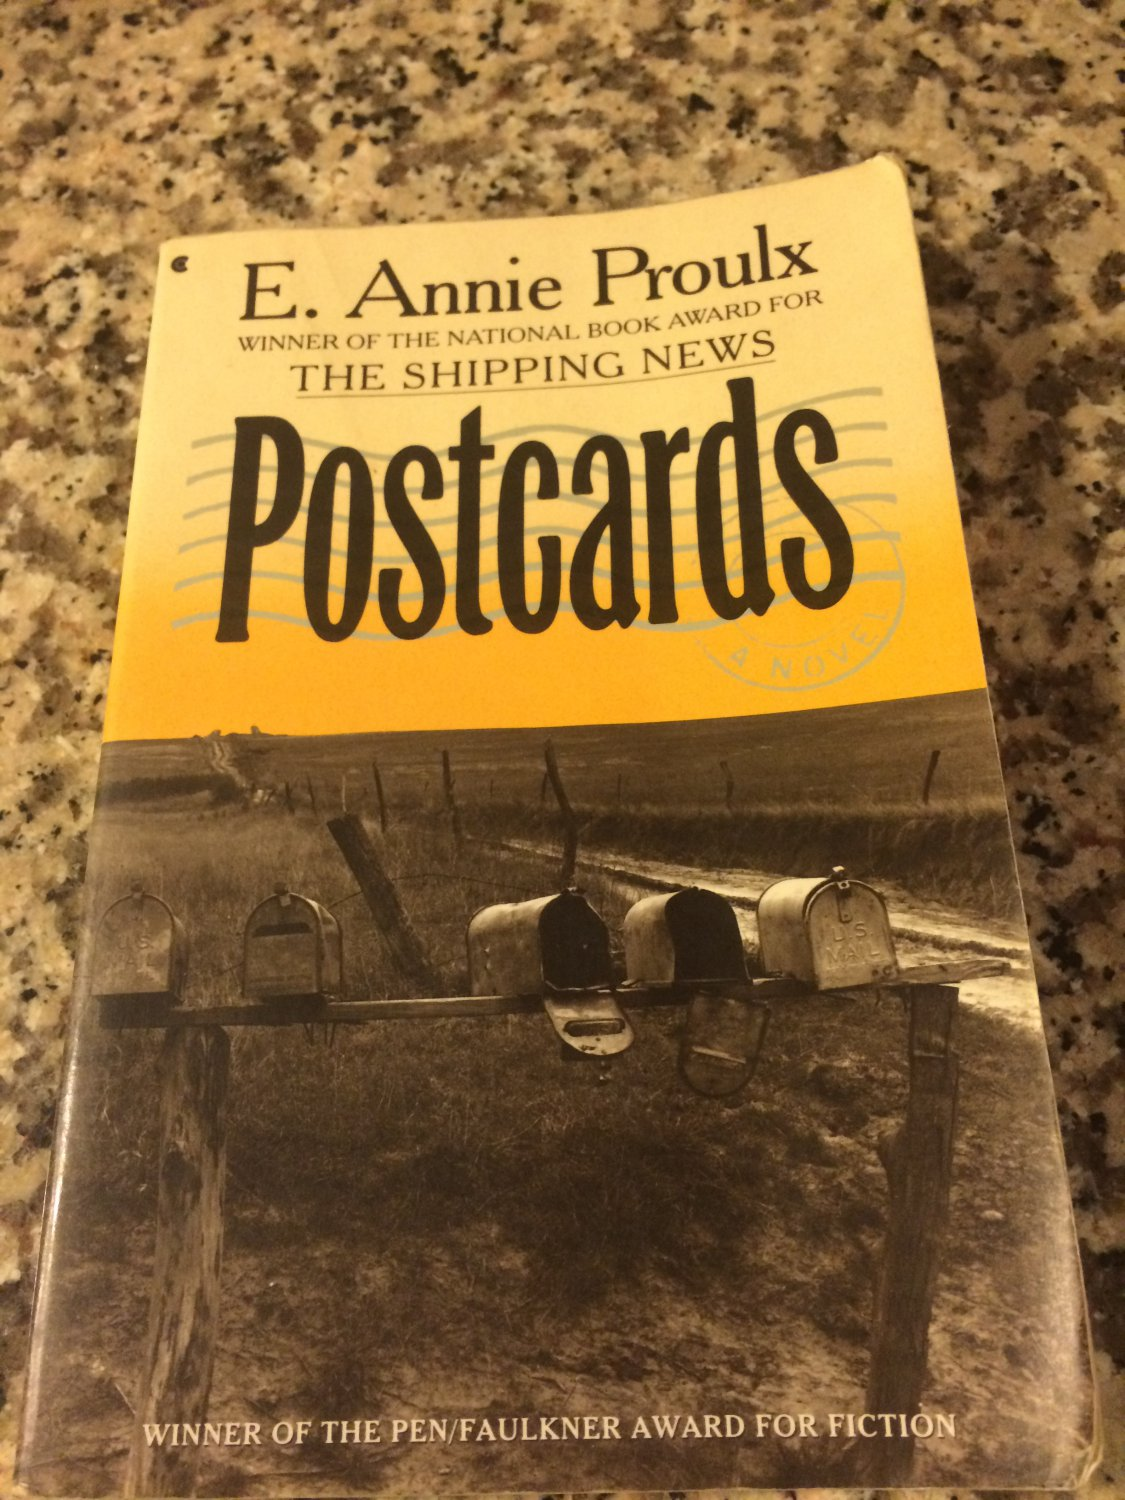 Postcards by Annie Proulx (1993, Paperback)